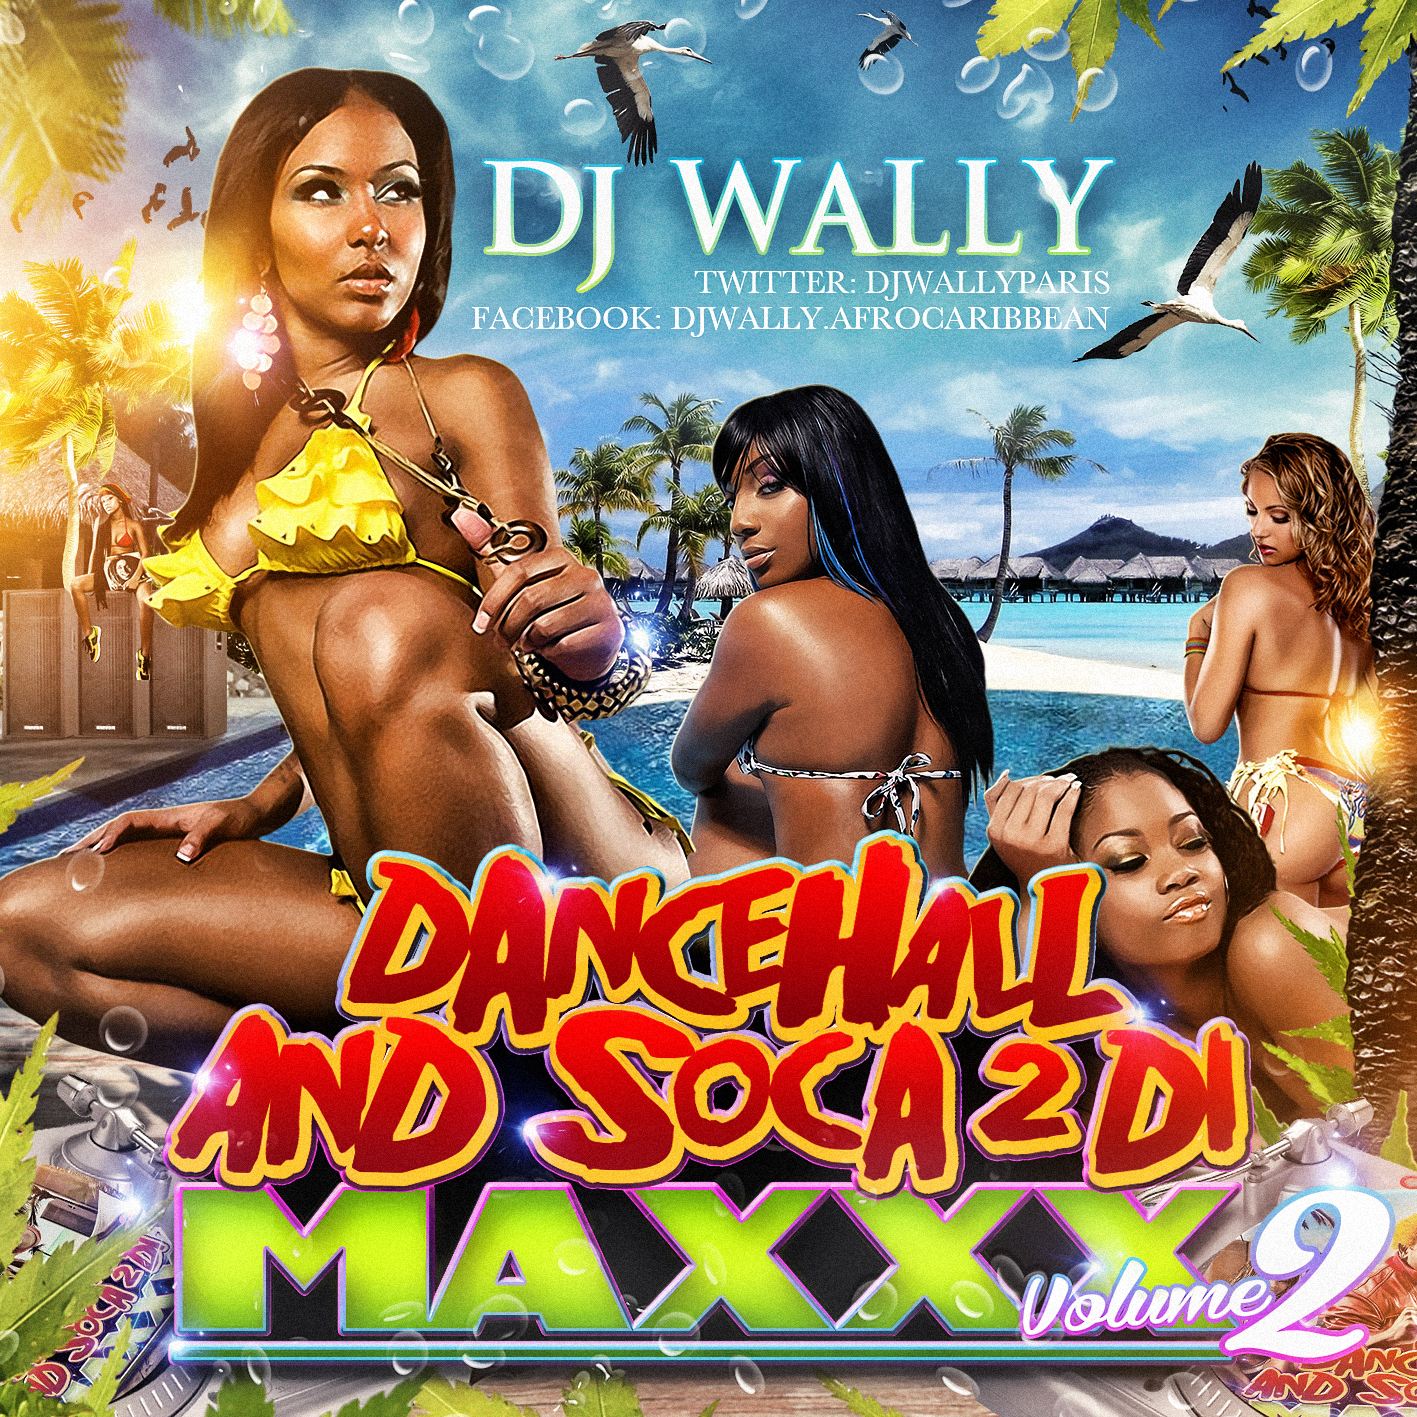 DJ WALLY – DANCEHALL AND SOCA TO DI MAXXX – VOLUME 3